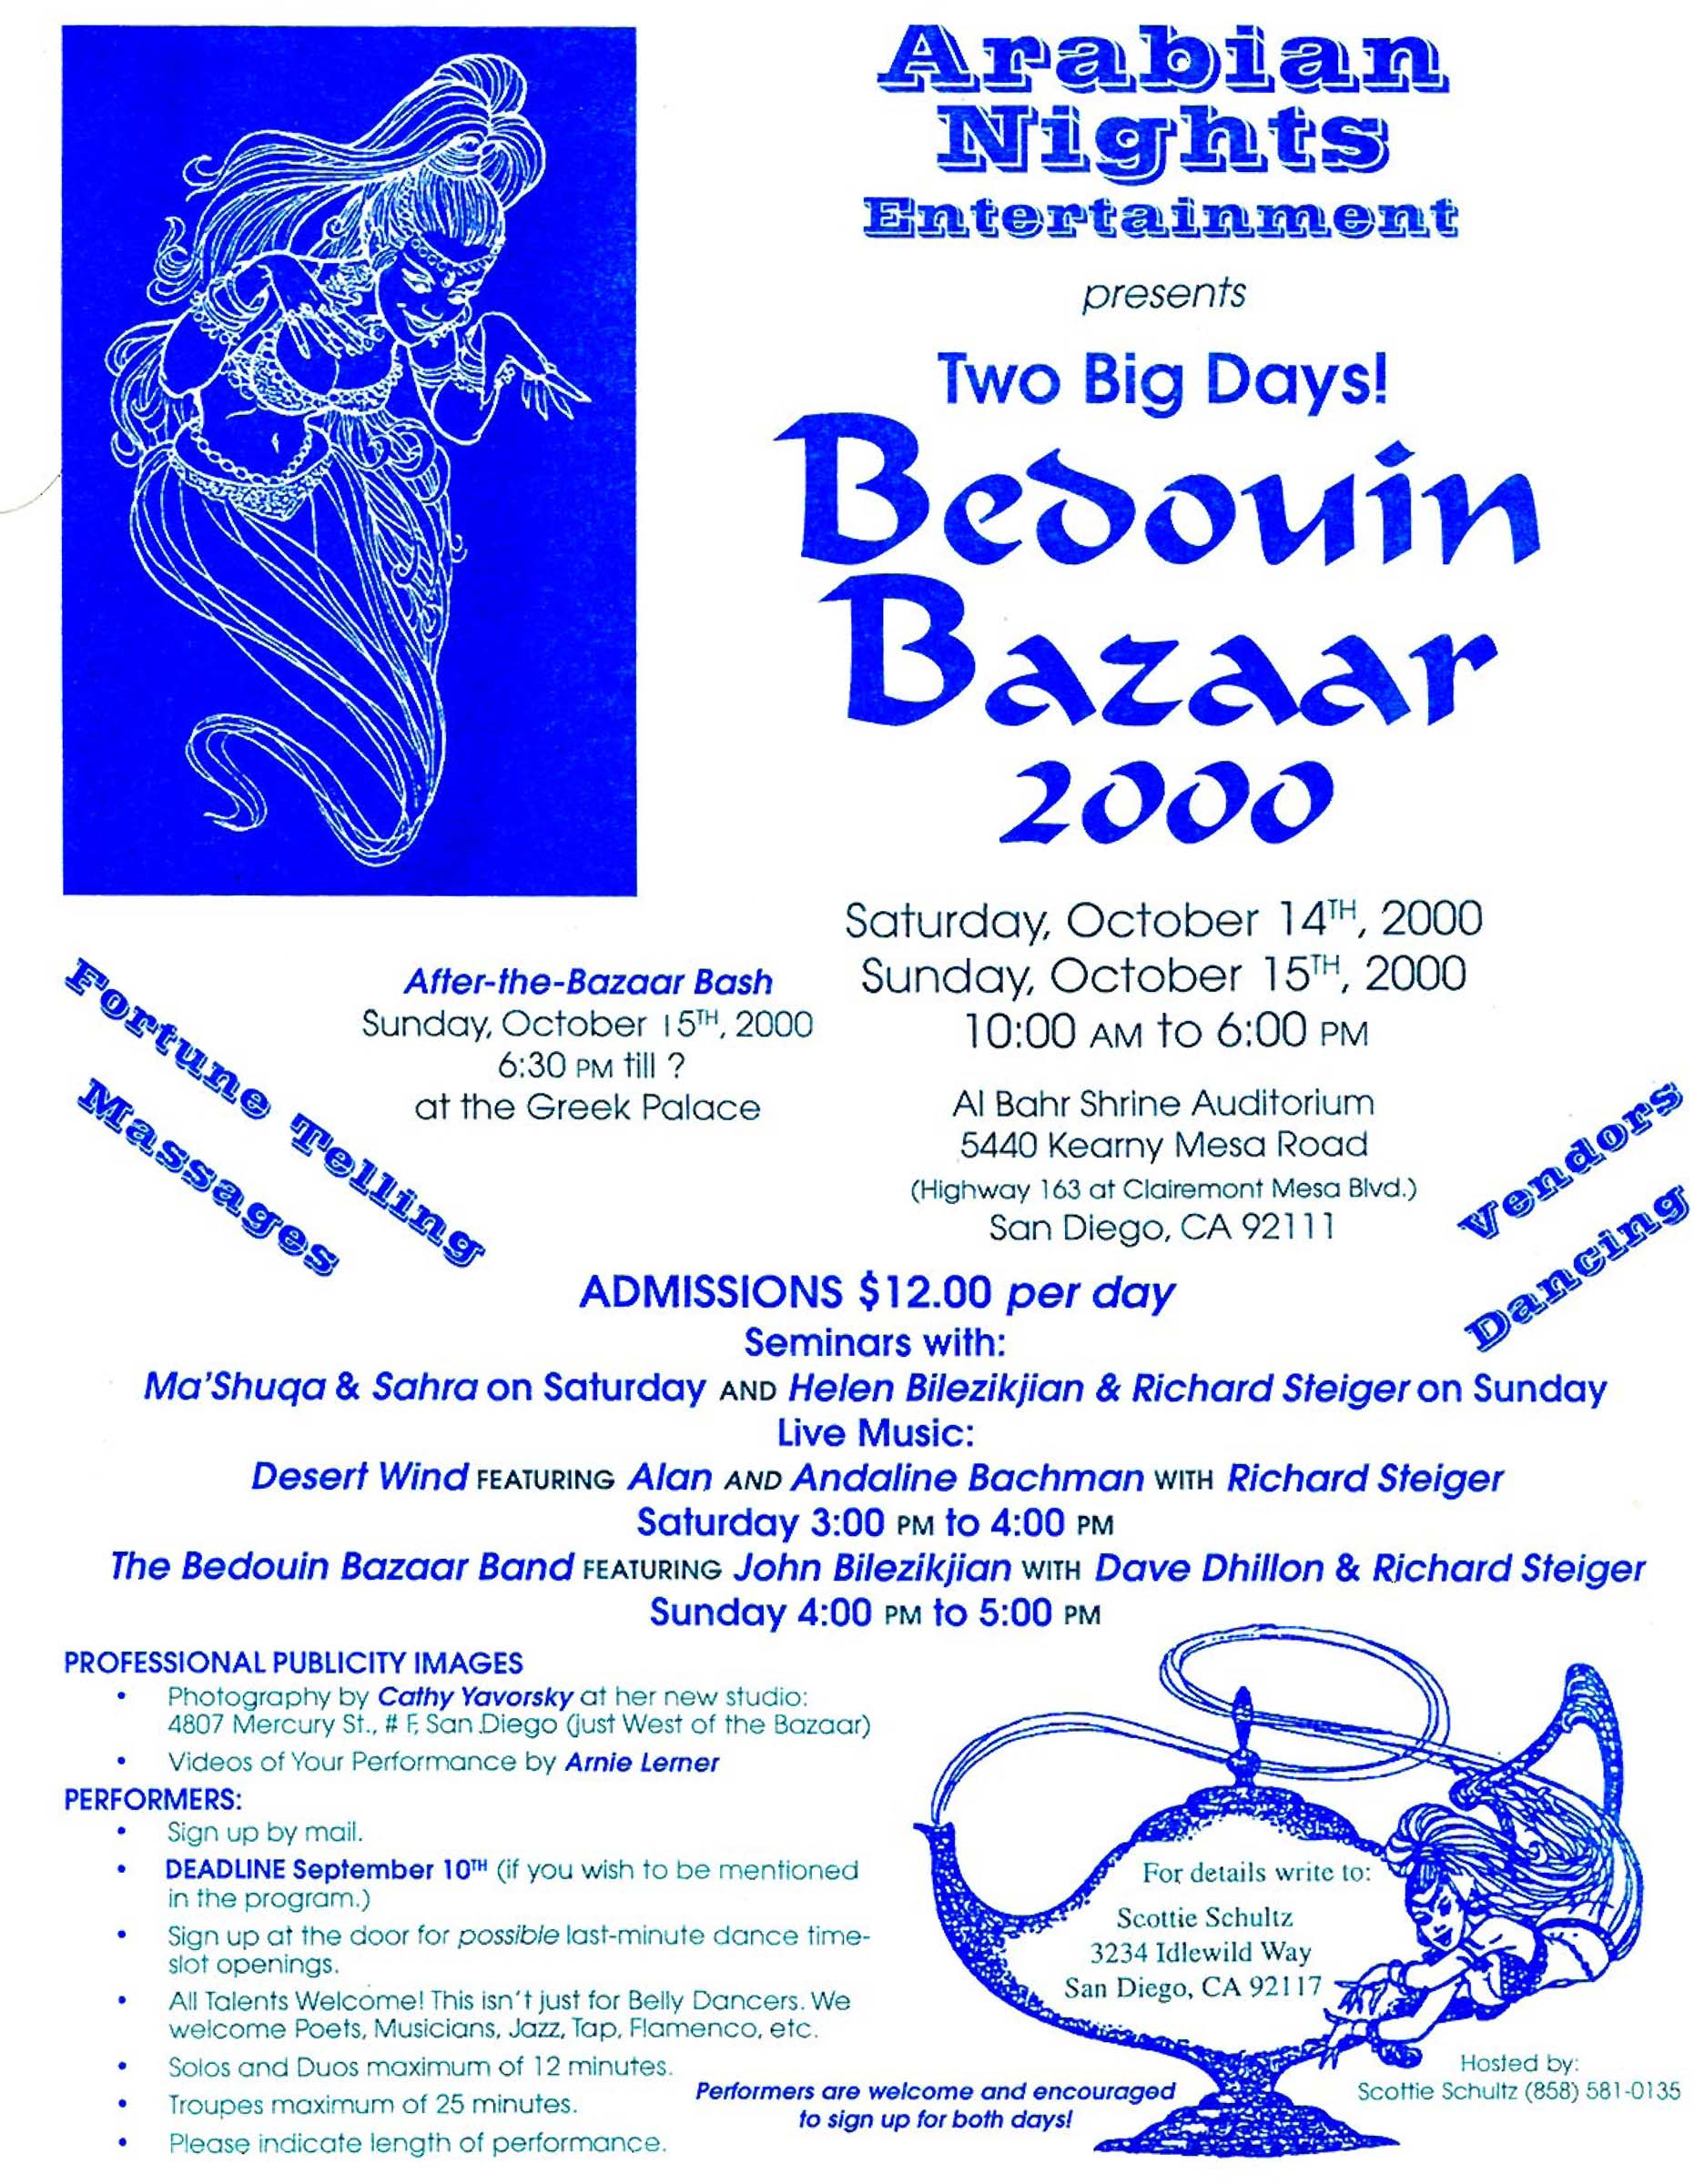 2000 Drum seminar for the Bedouin Bazaar